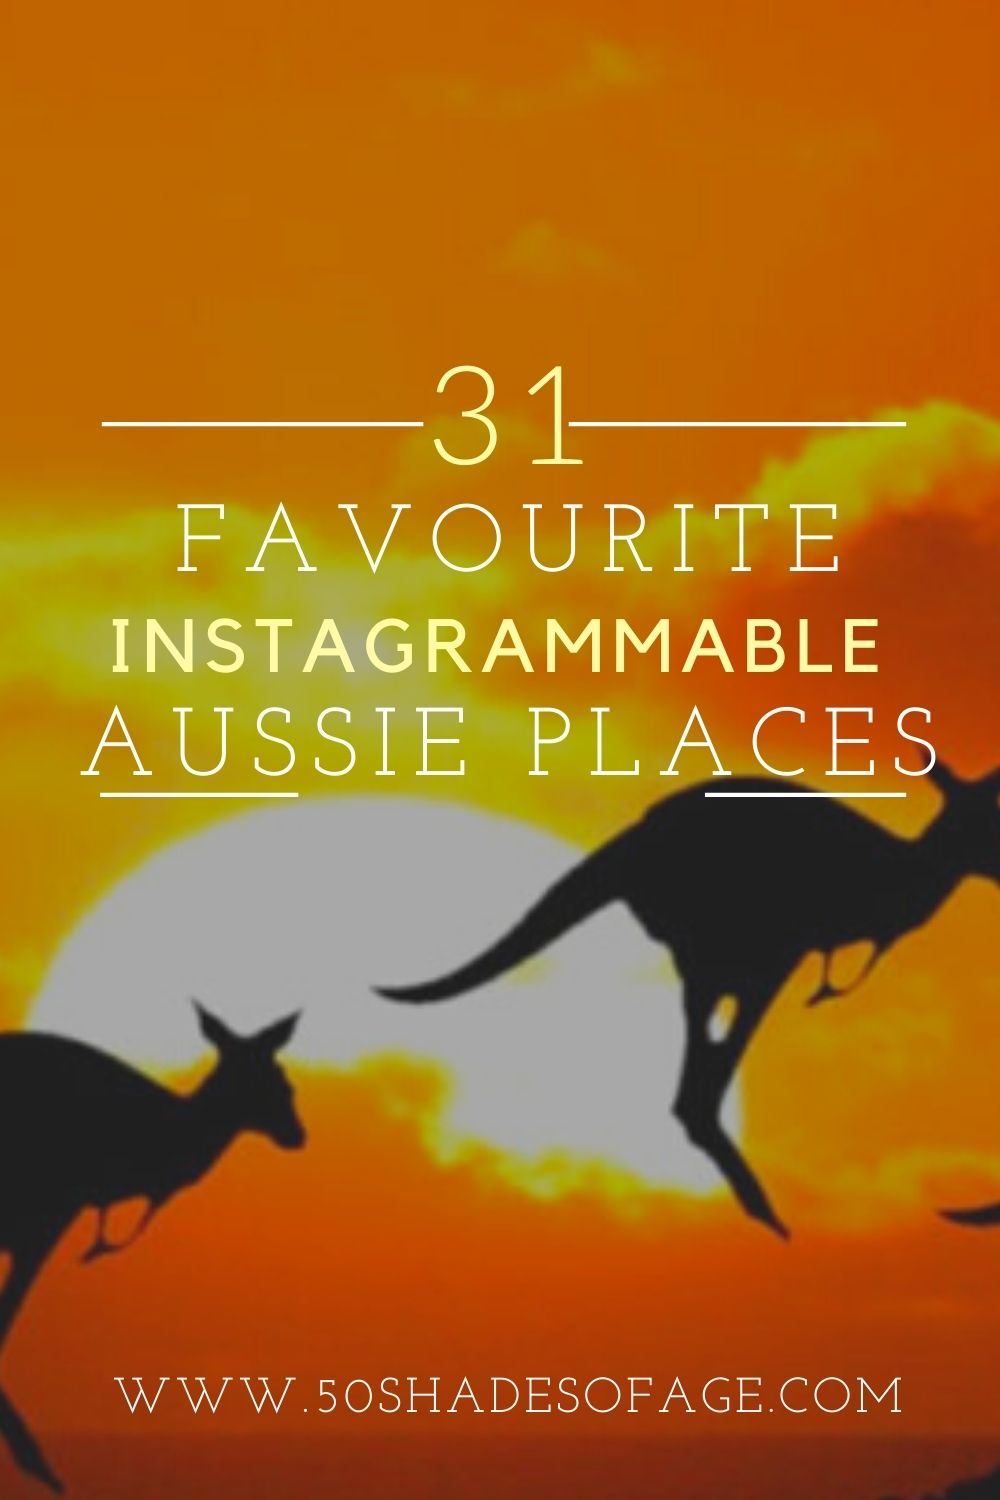 31 Favourite Instagrammable Aussie Places